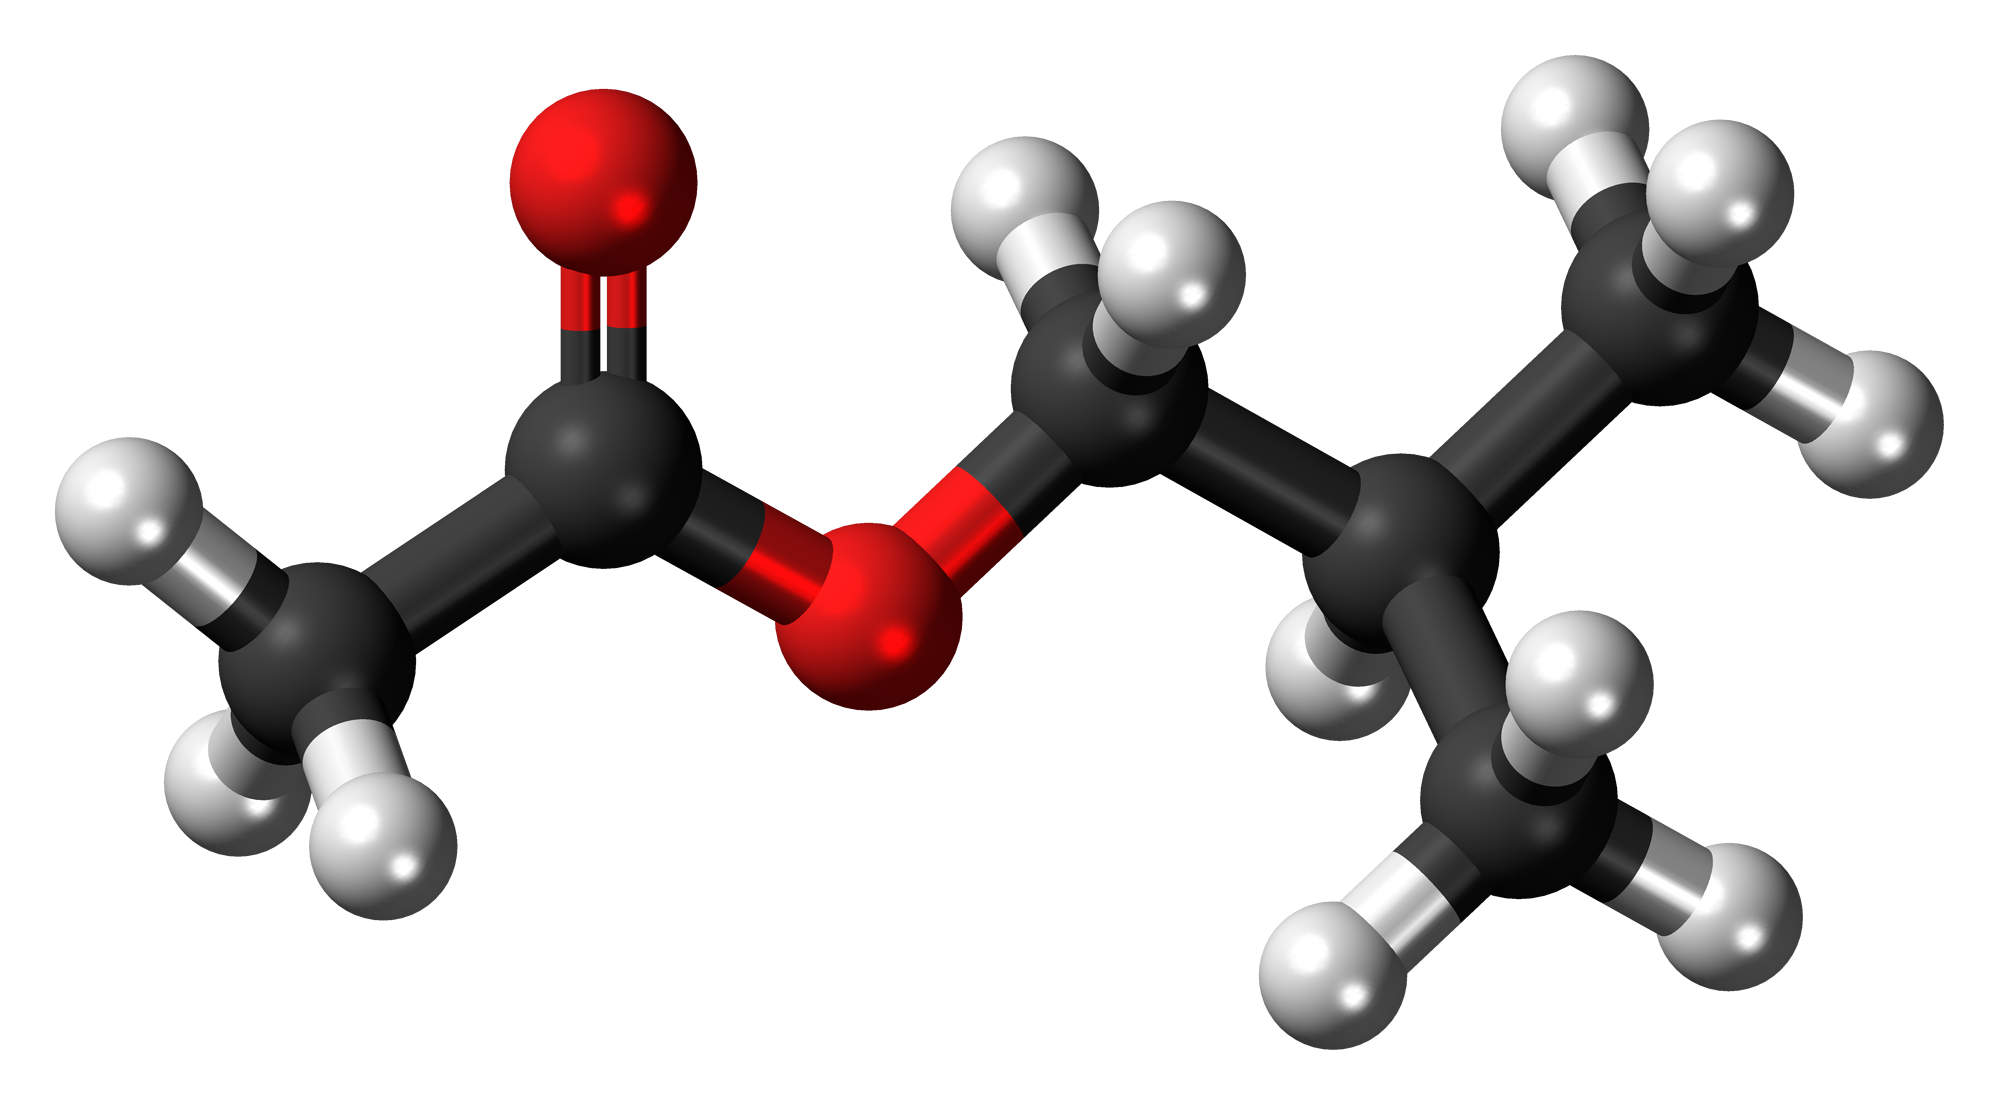 File:Isobutyl acetate 3D ball.png - Wikimedia Commons